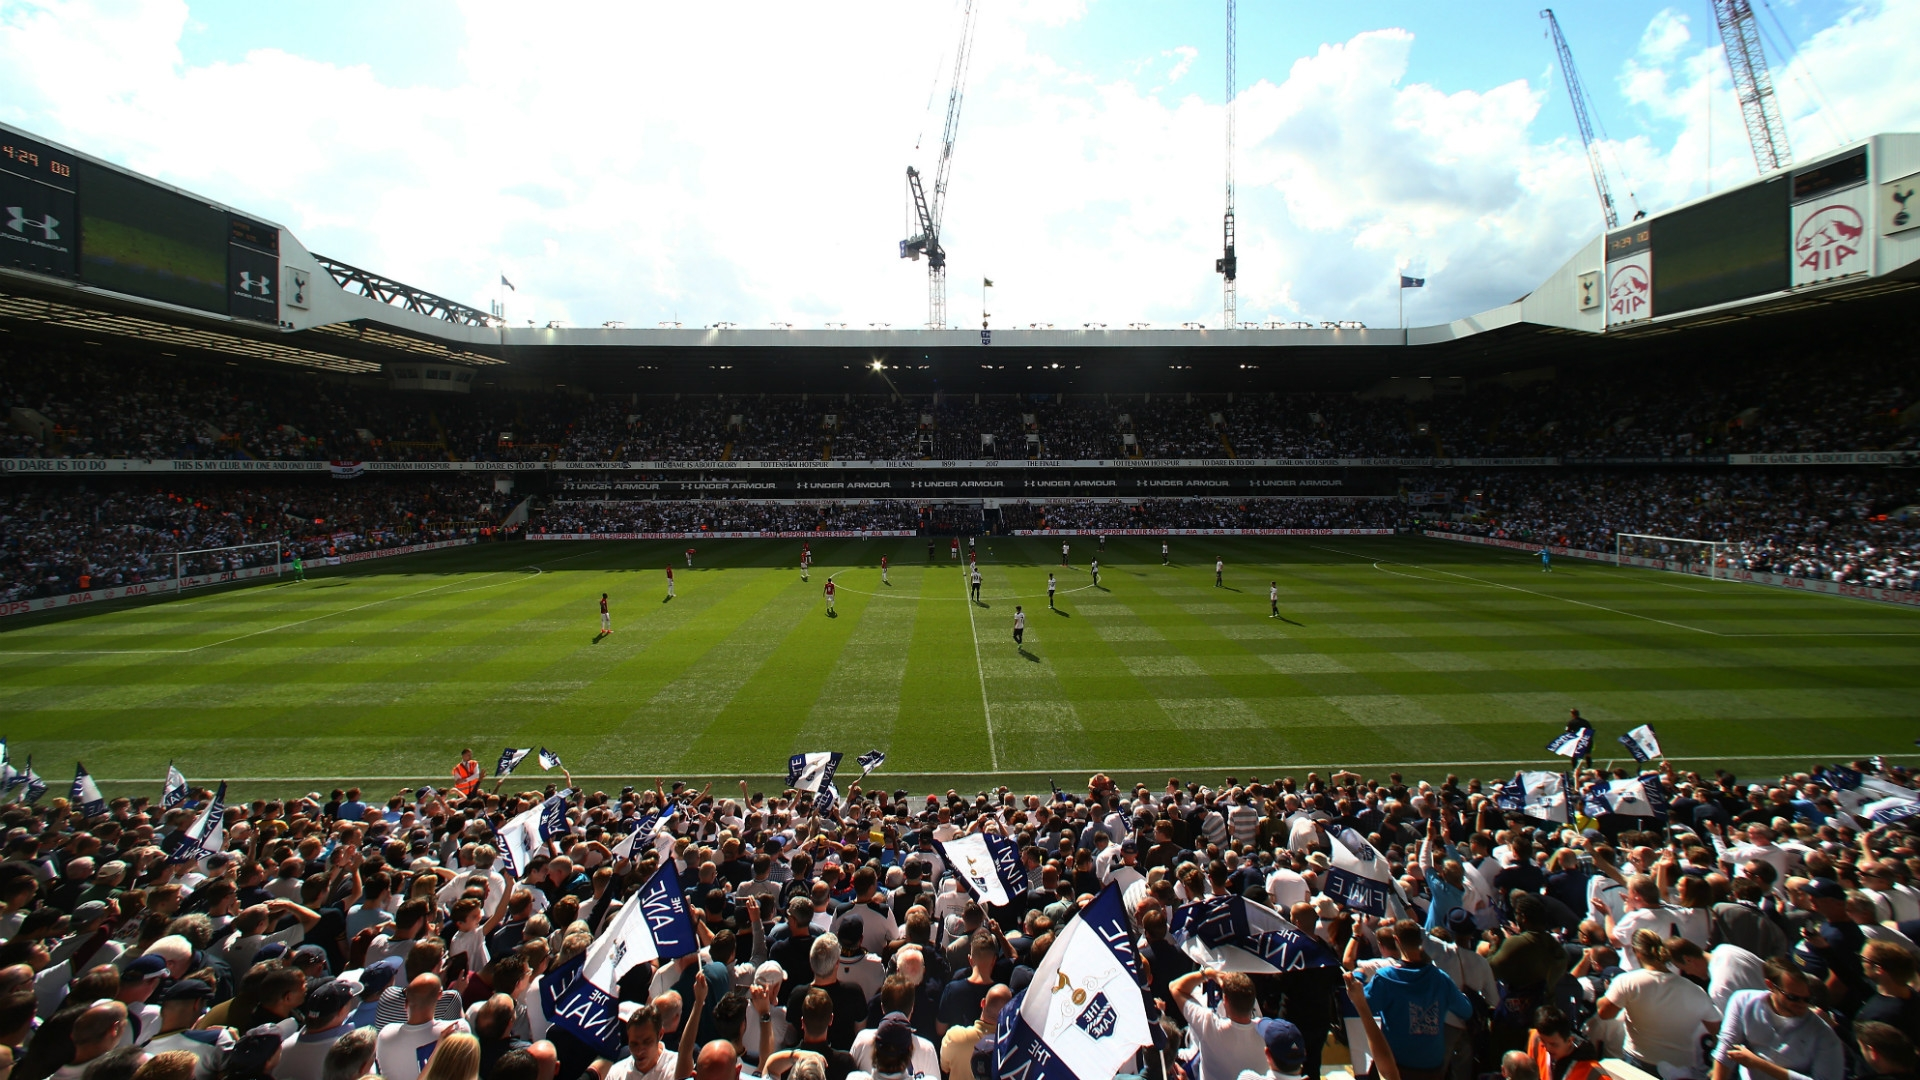 In fact, Tottenham is one of the most successful clubs in terms of offering consistently good performances, despite playing against clubs with much higher budgets.